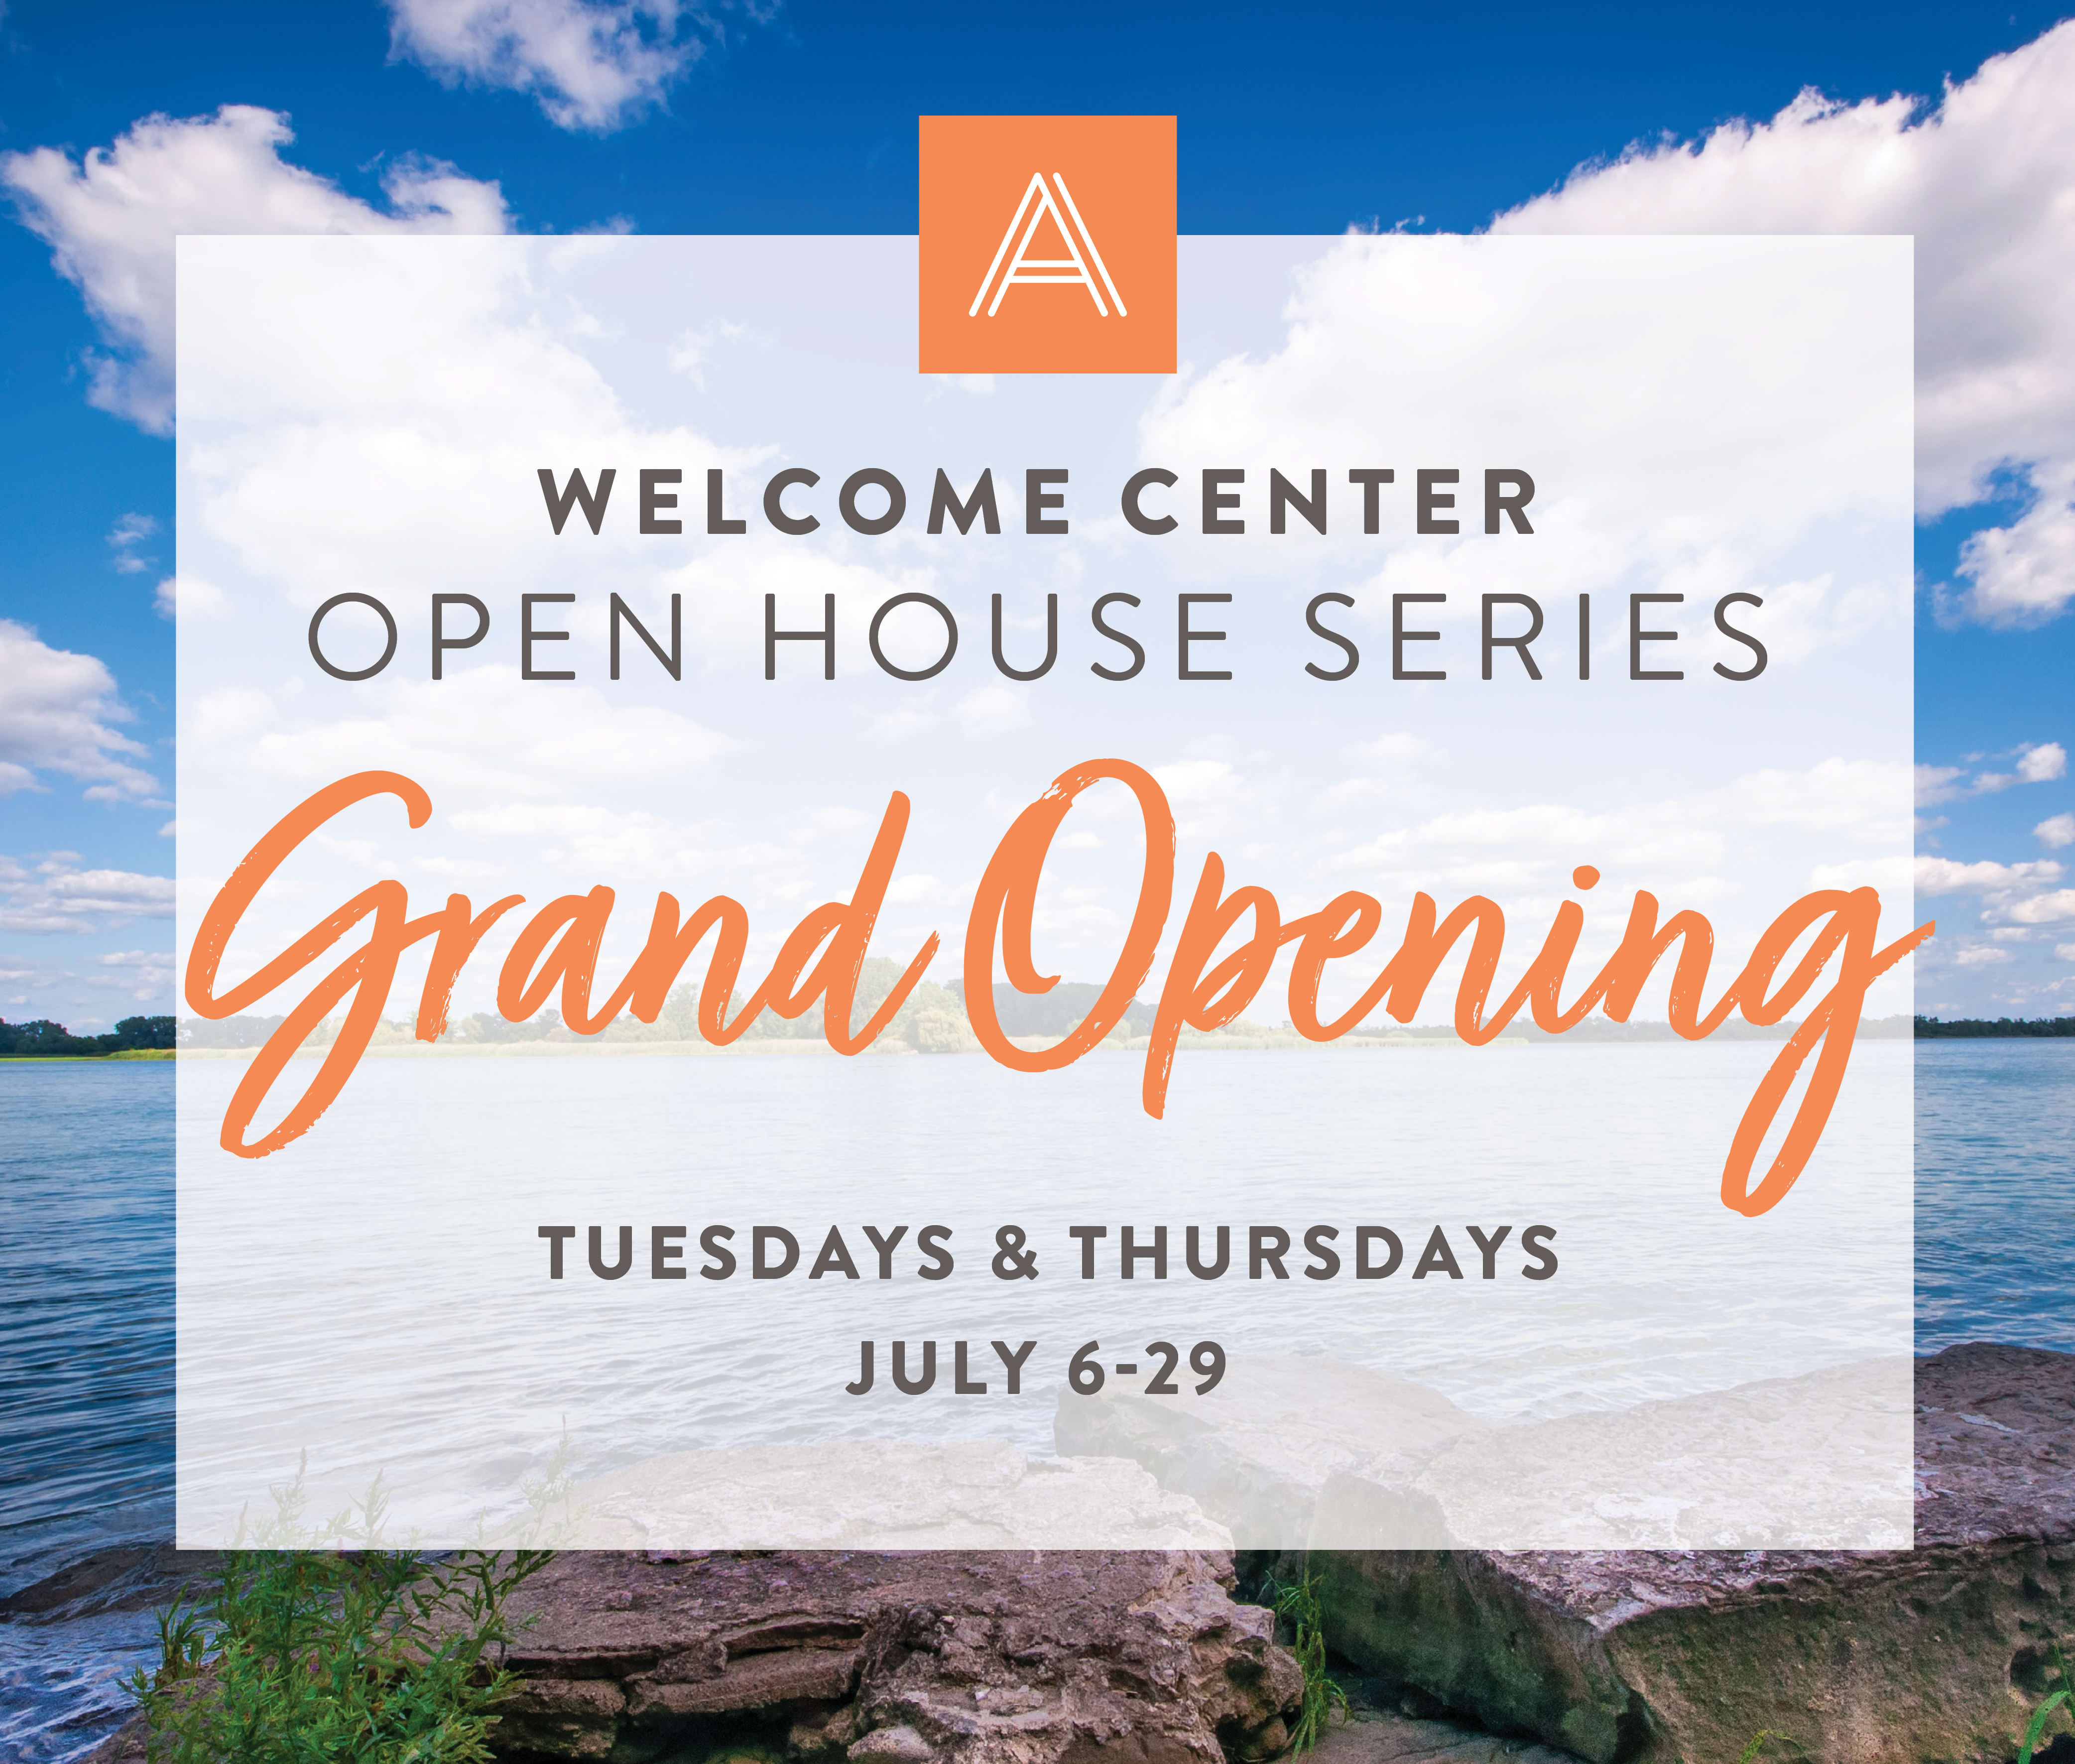 Join us for an event at Anthology of Farmington Hills  - Opening Early 2022 in Farmington Hills, Michigan